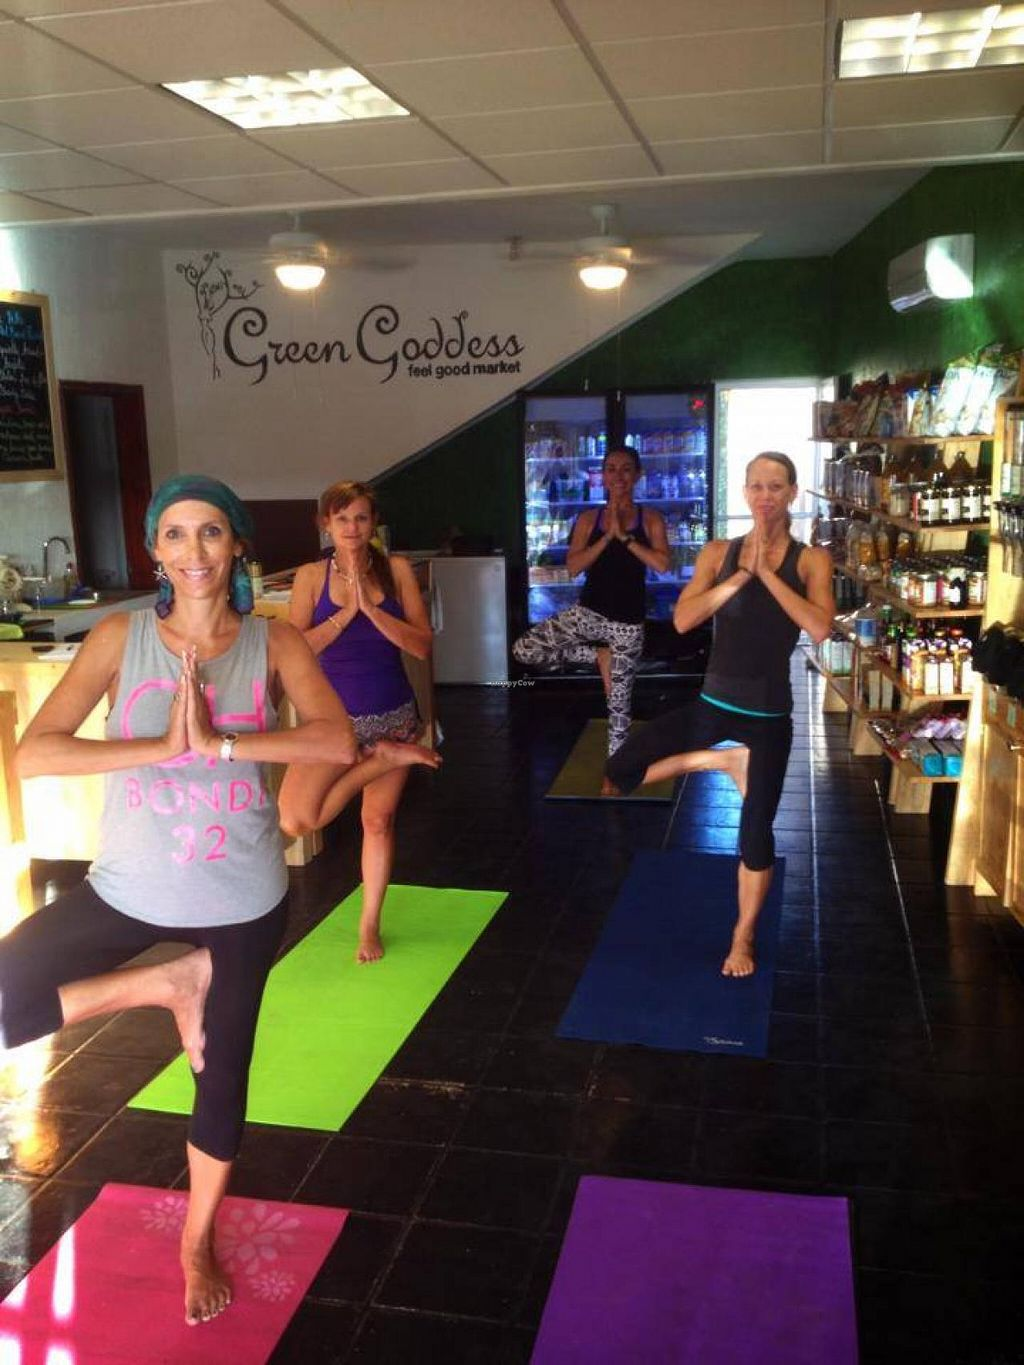 """Photo of CLOSED: Green Goddess Feel Good Market  by <a href=""""/members/profile/JoannaCoonFoxT"""">JoannaCoonFoxT</a> <br/>weekly morning yoga! <br/> April 5, 2014  - <a href='/contact/abuse/image/46341/67093'>Report</a>"""